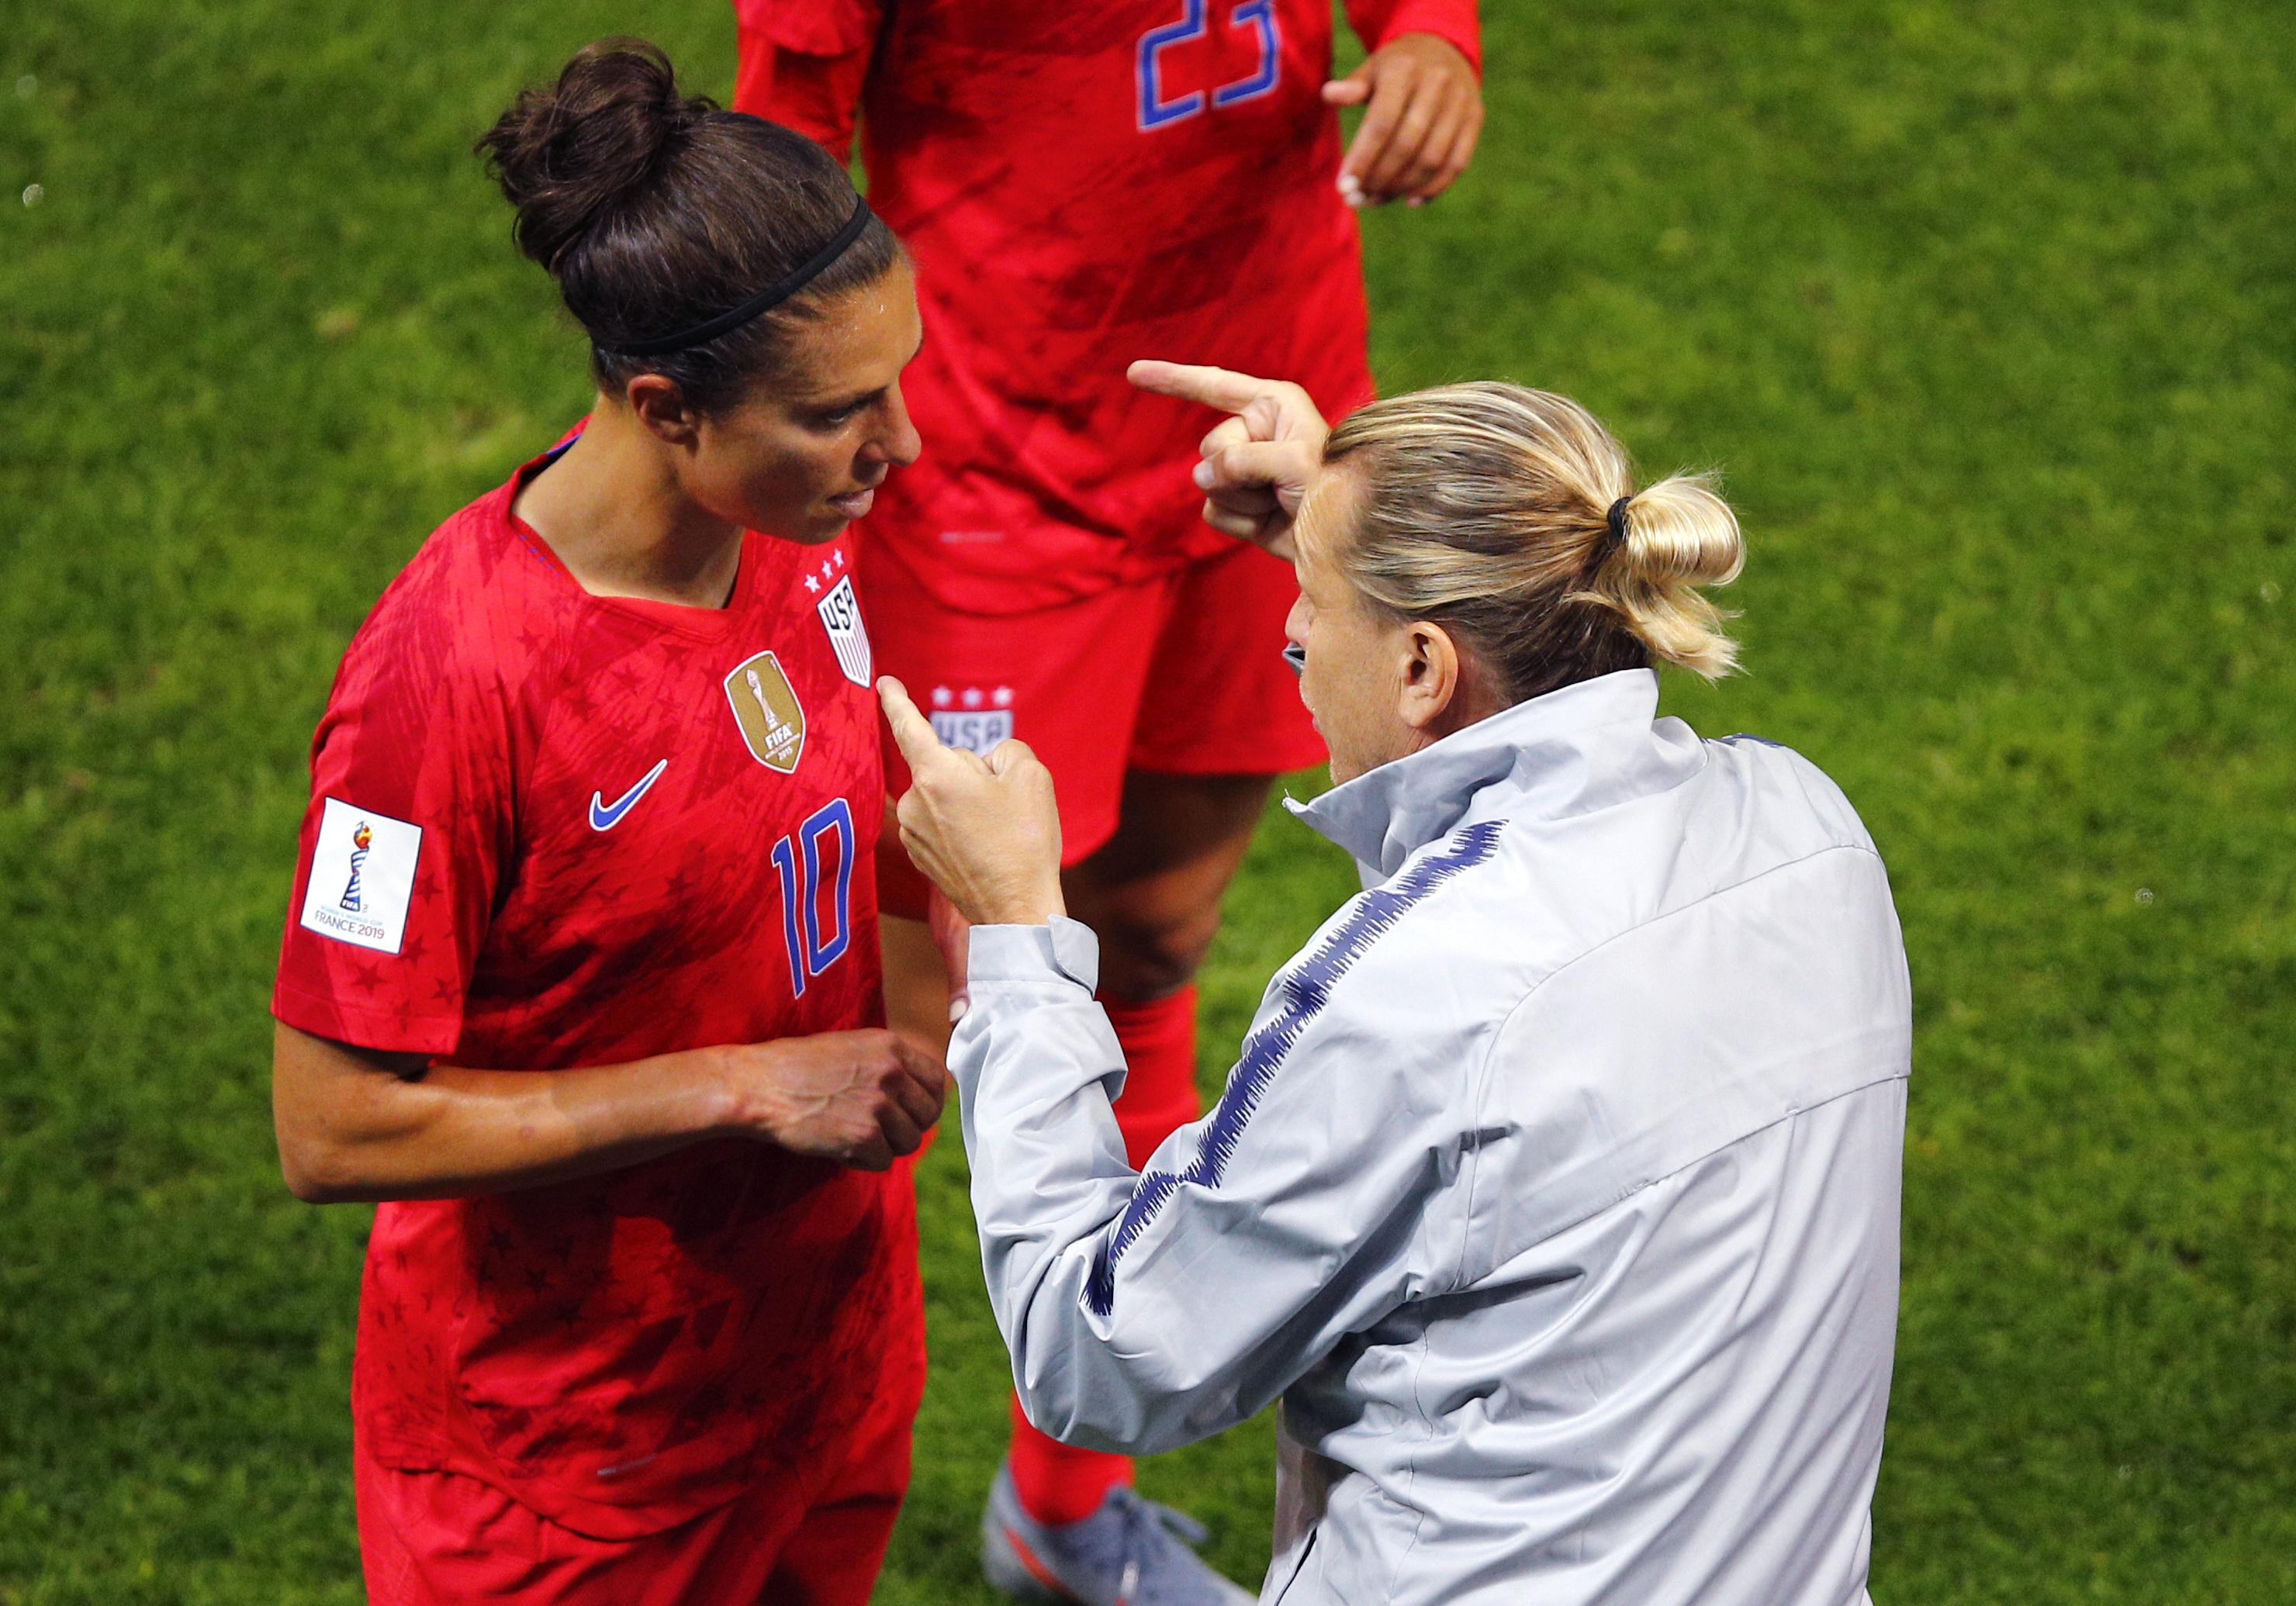 catch 8f5b0 9f1d2 United States' Carli Lloyd adjusts to new role, but doesn't ...